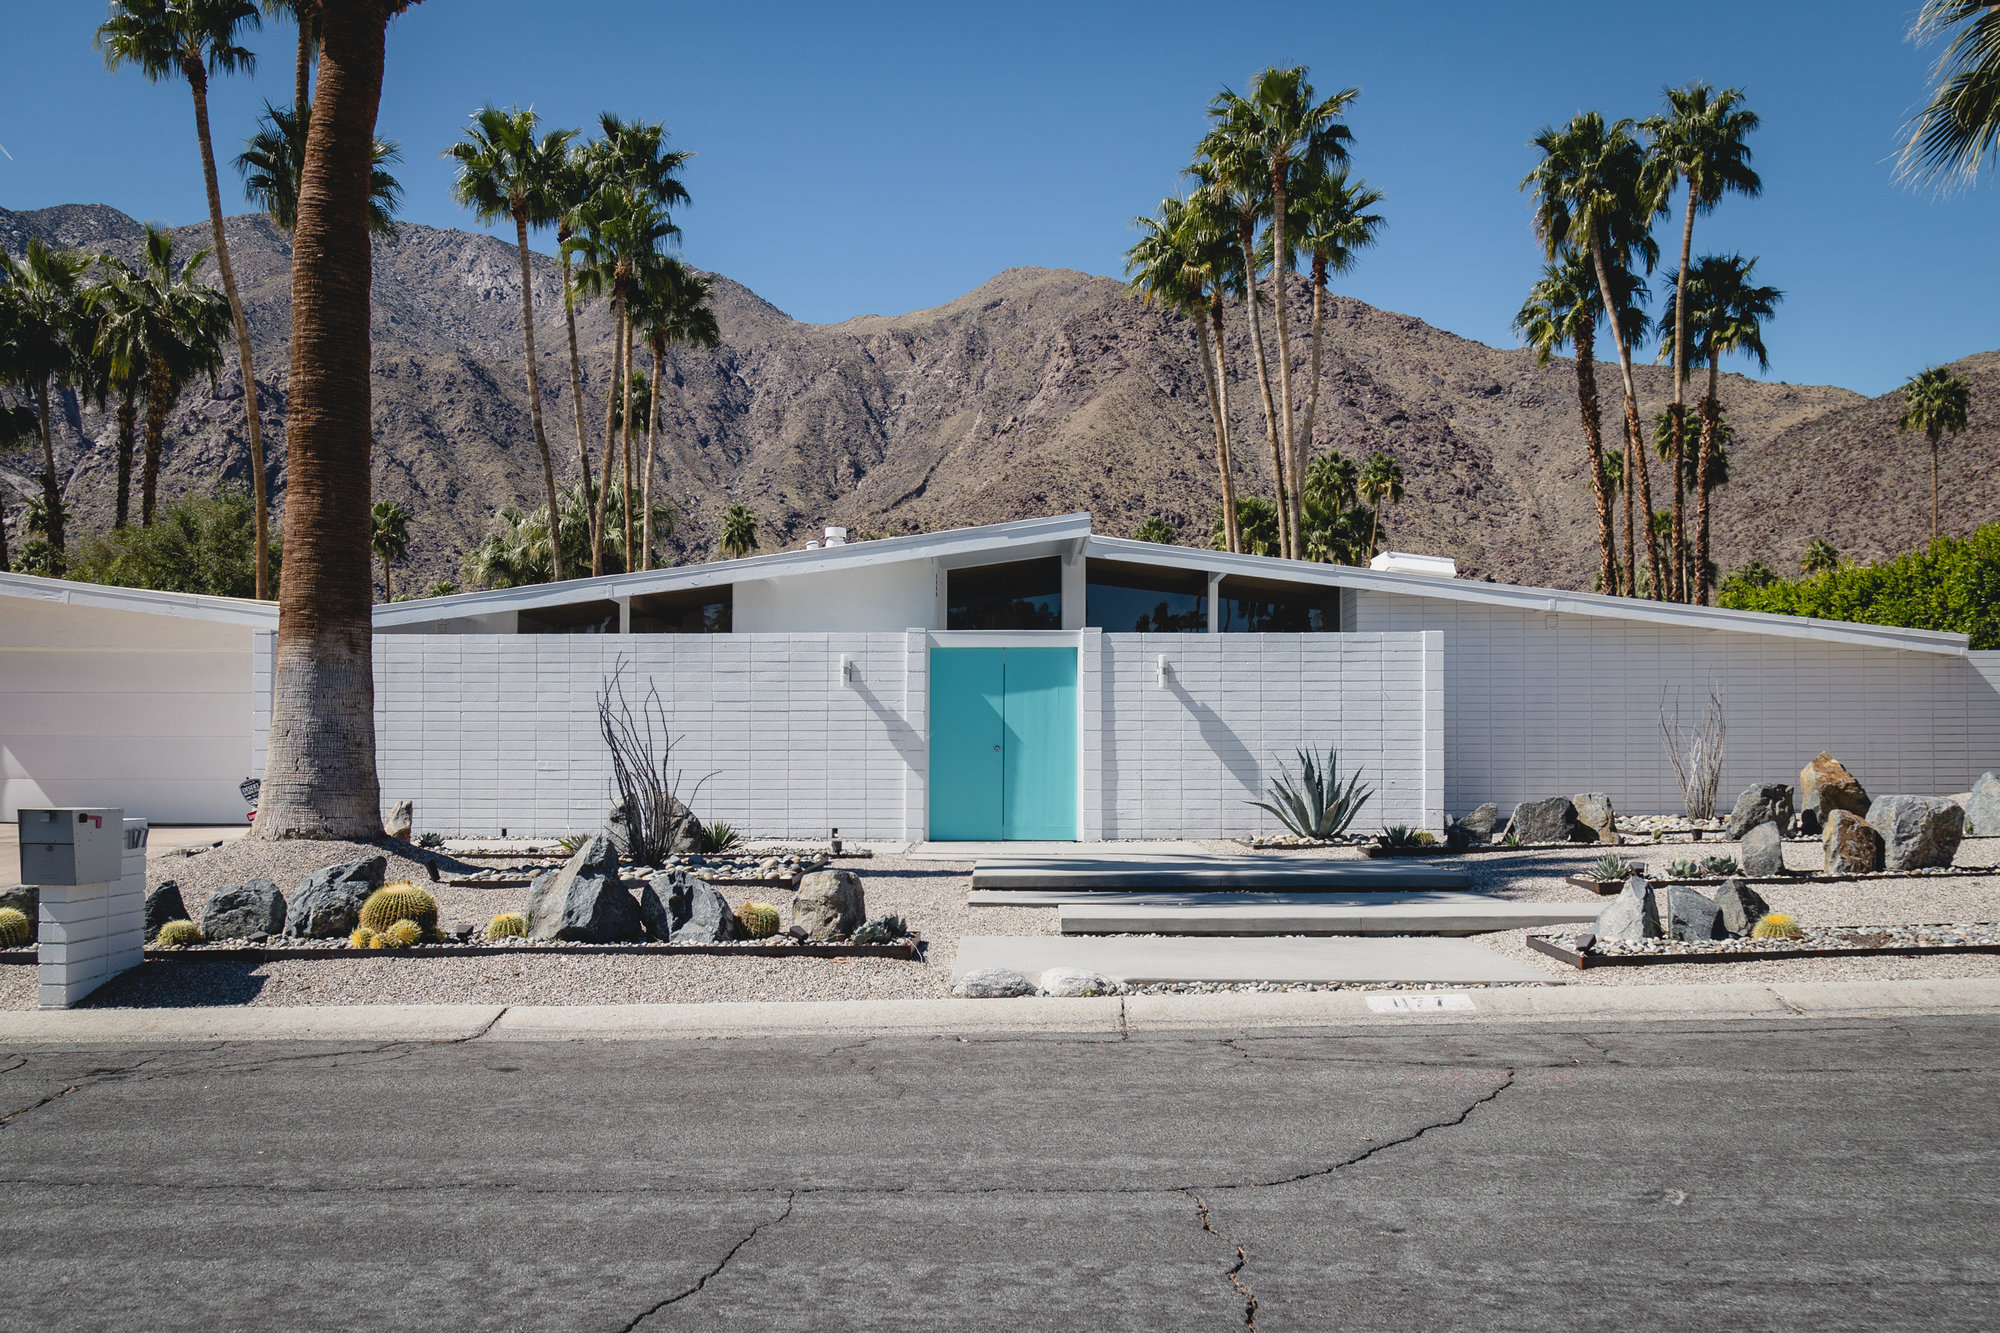 Mid-century modern homes in Palm Springs